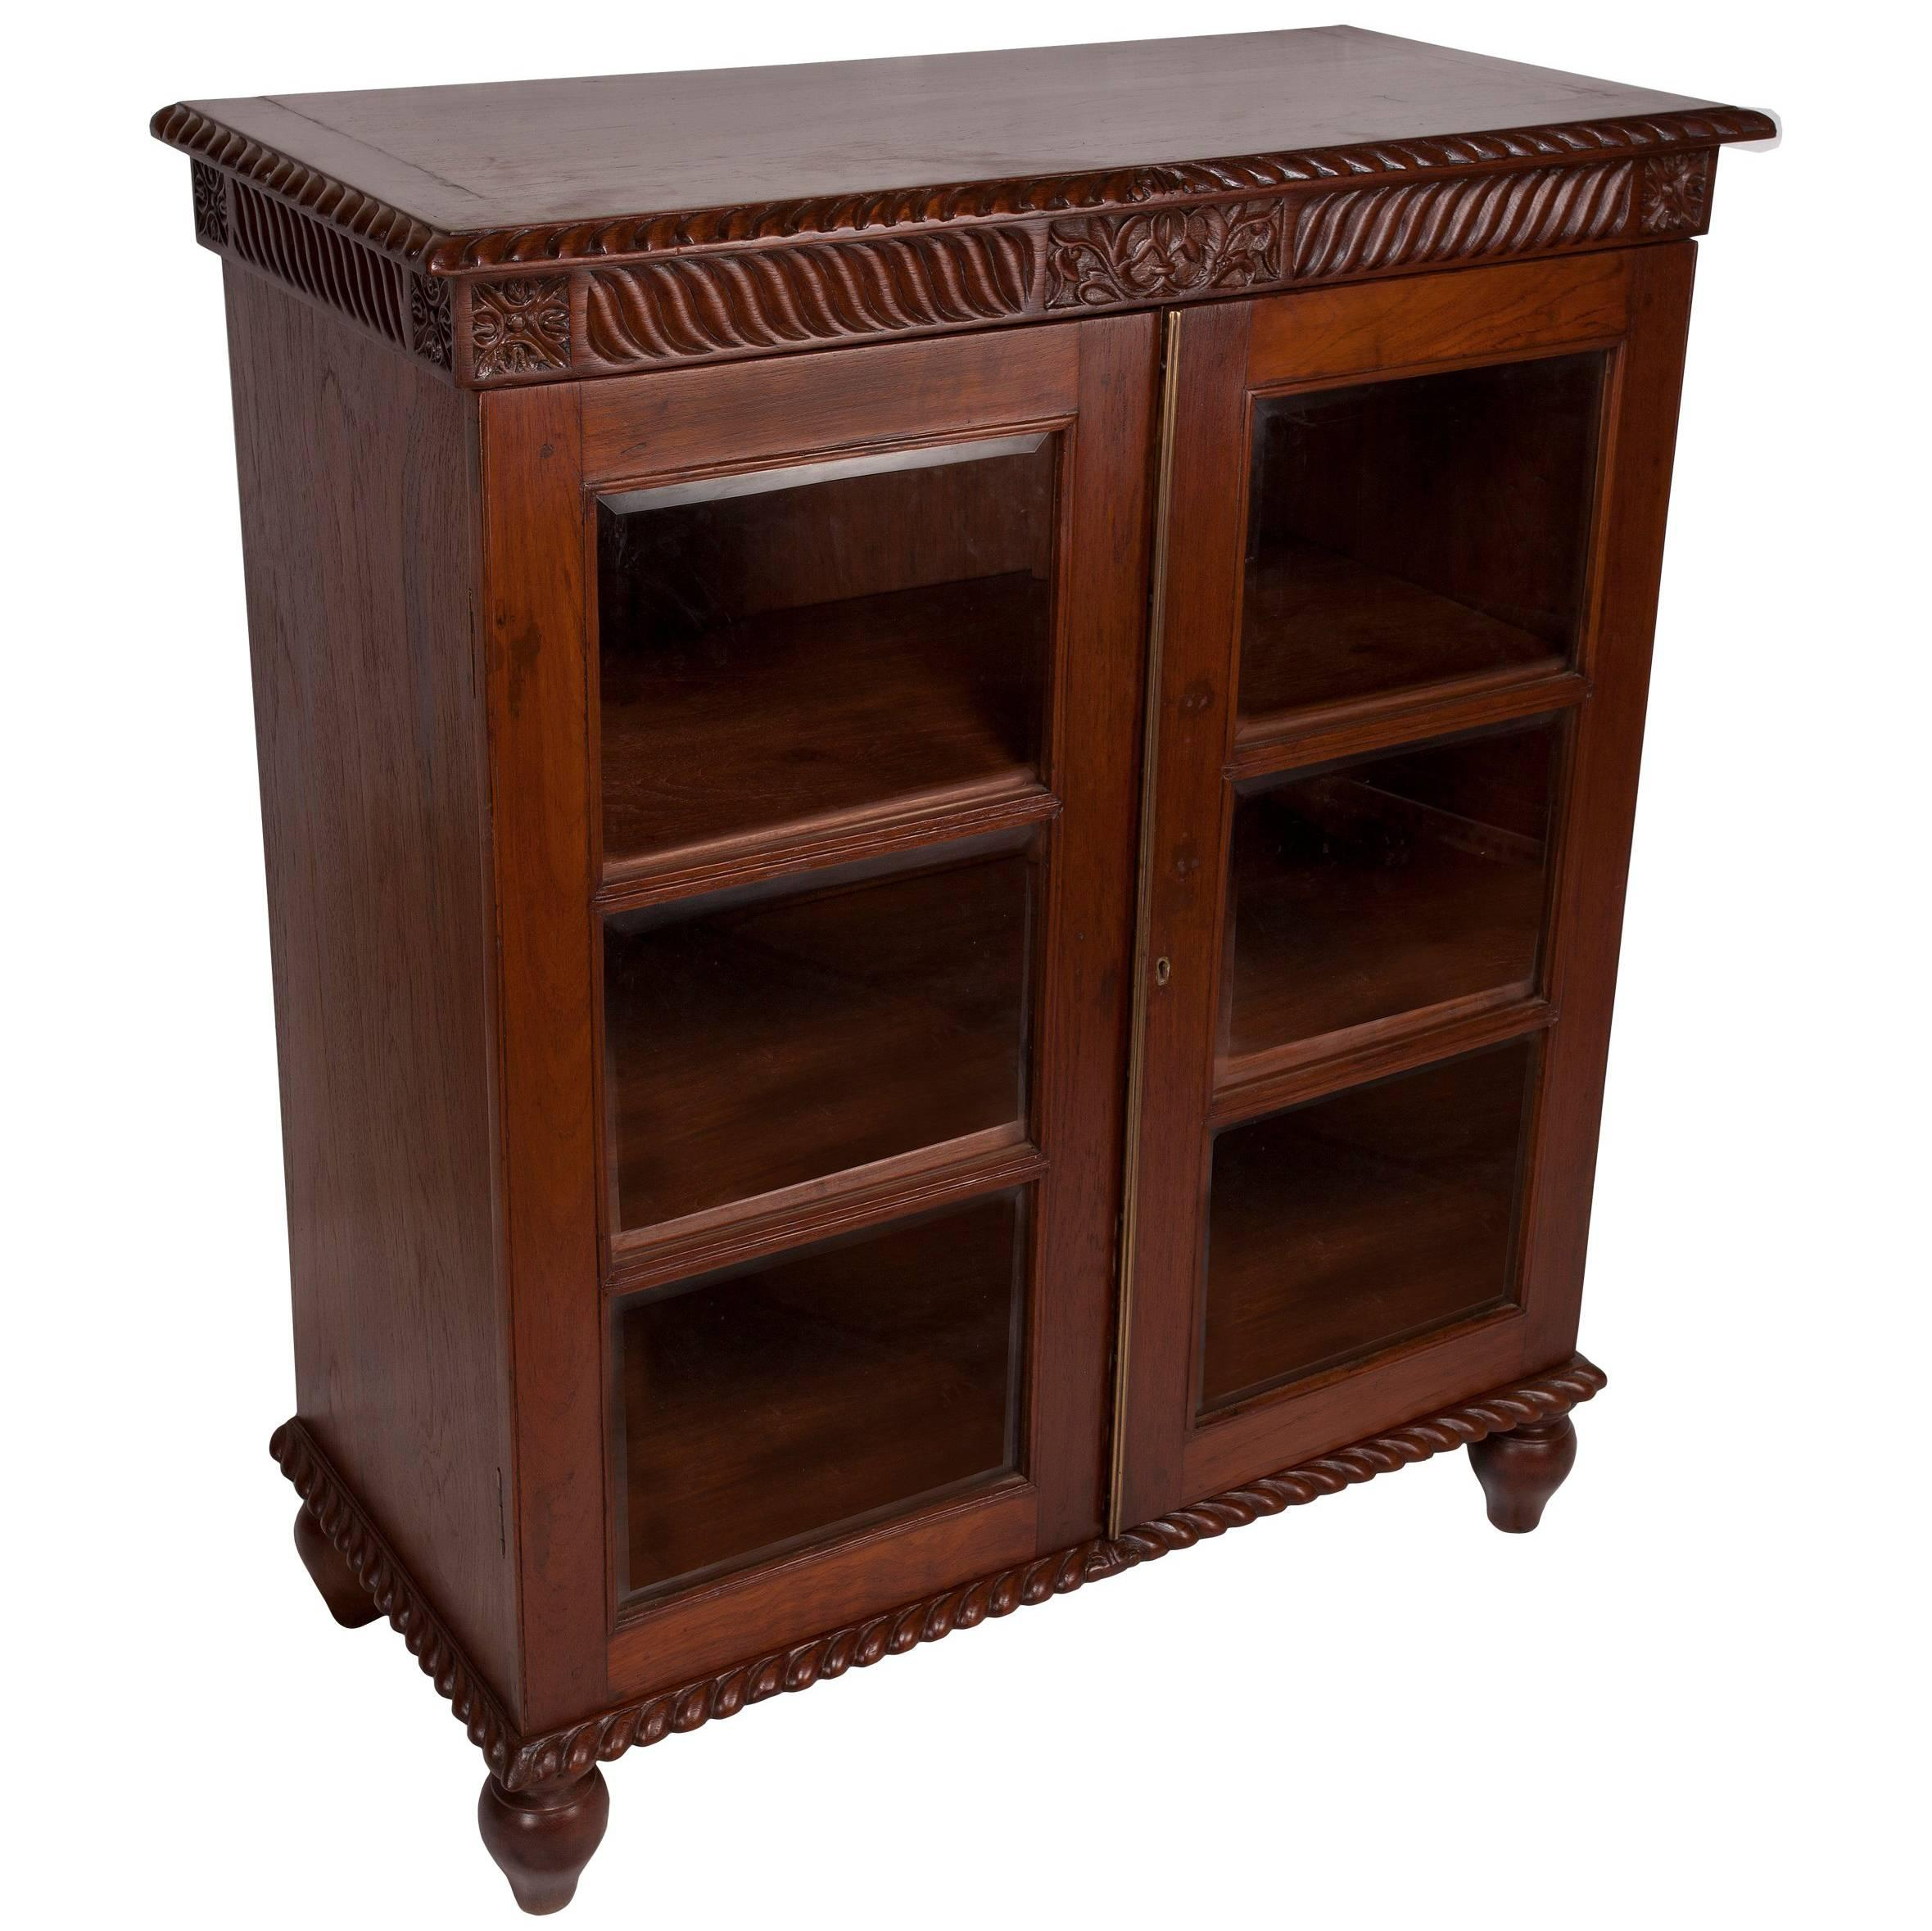 british colonial mahogany petite bookcase with glass door panels early 1900s